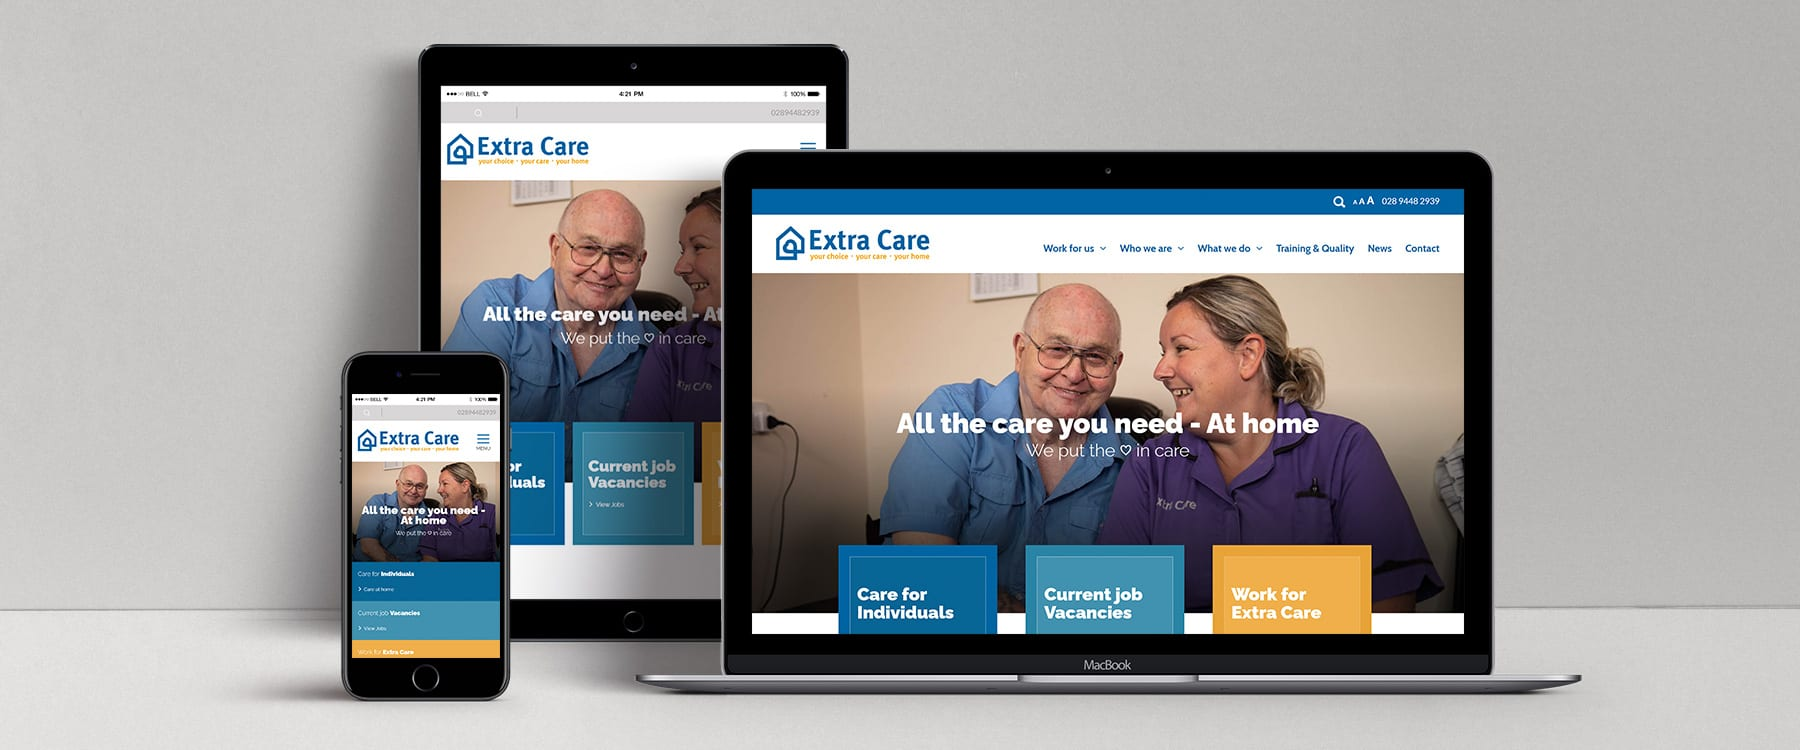 Extra Care Image First